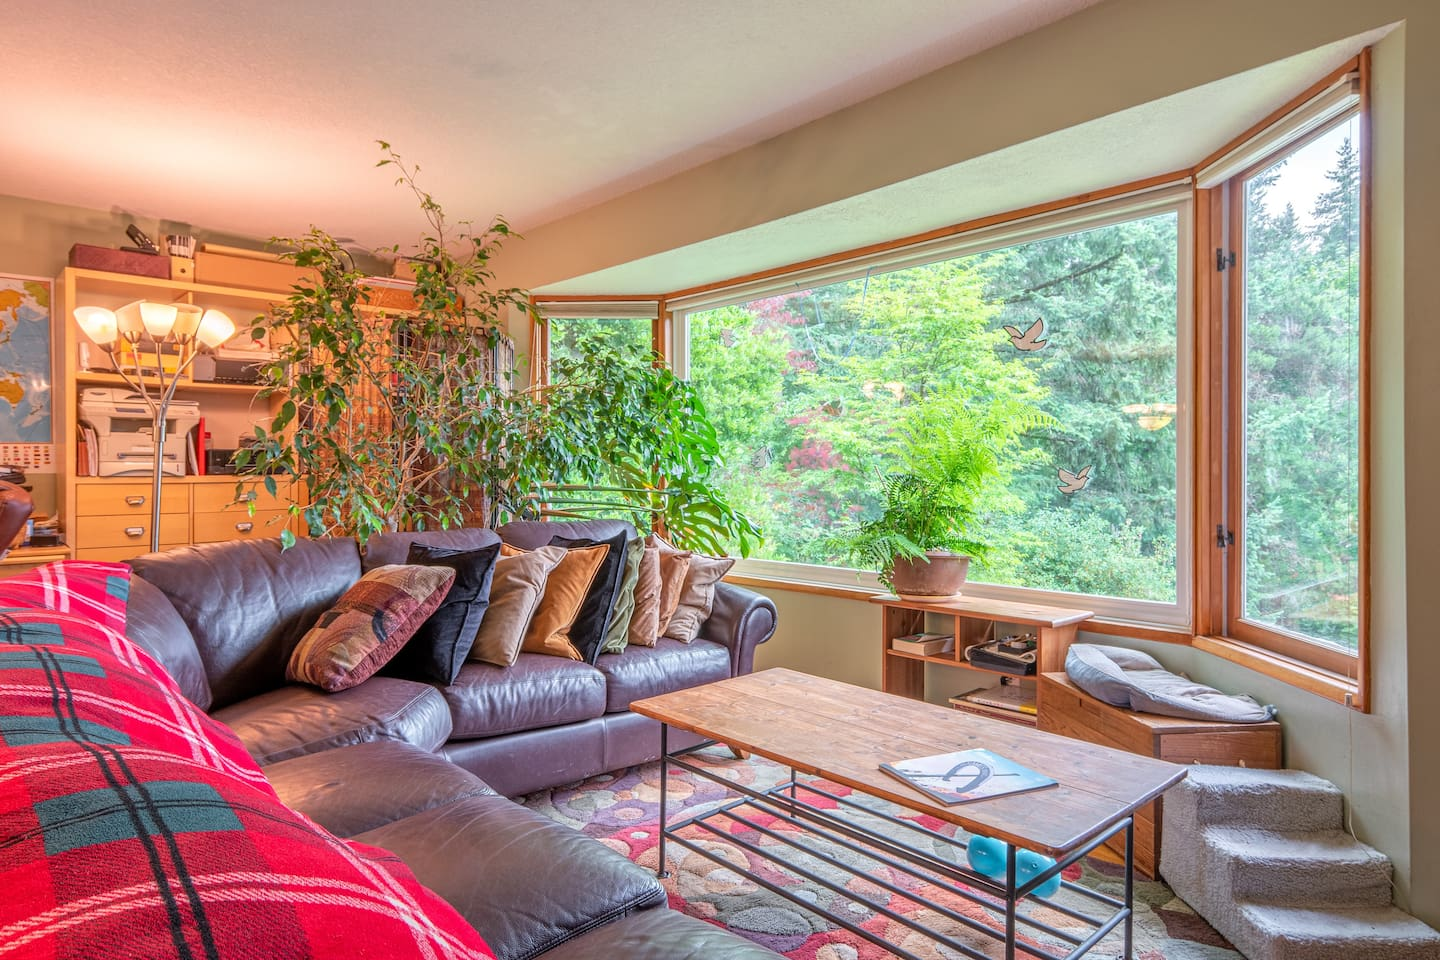 The huge picture window in the living room has more than 45 square feet of glass overlooking a beautiful forested neighborhood. From every window in the house, the view is filled with trees.